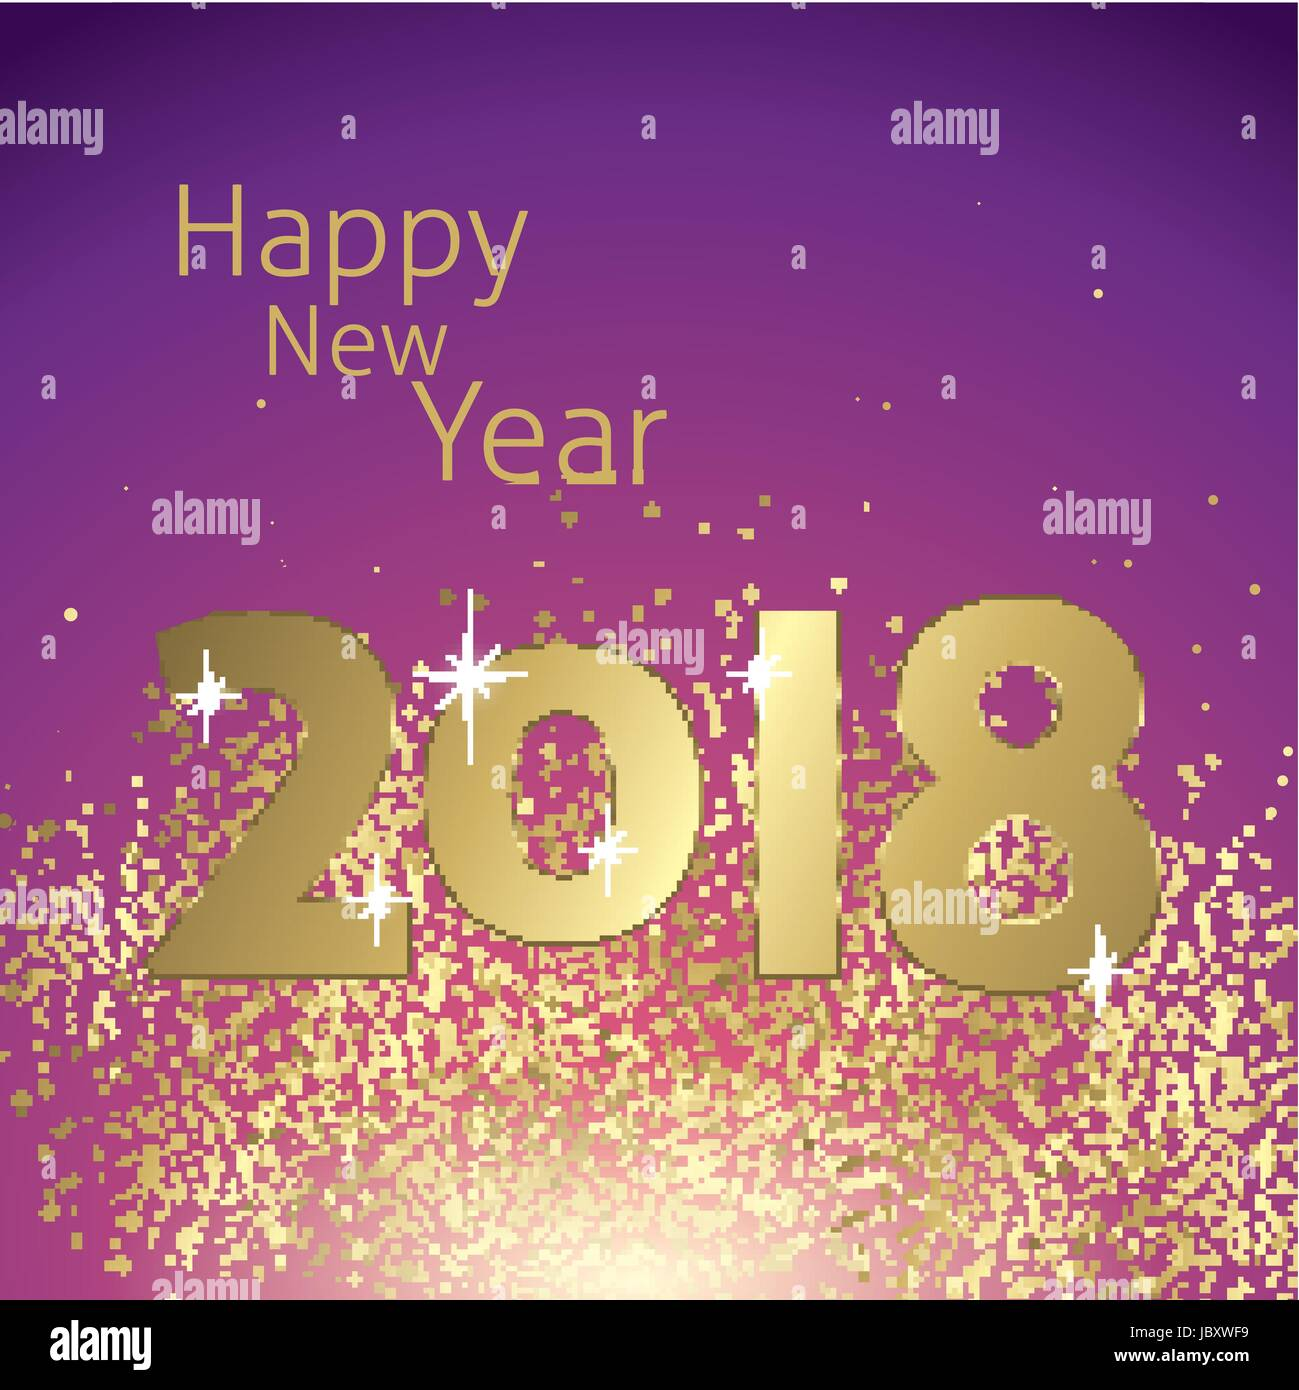 Happy new year 2018 greeting card vector stock vector art happy new year 2018 greeting card vector m4hsunfo